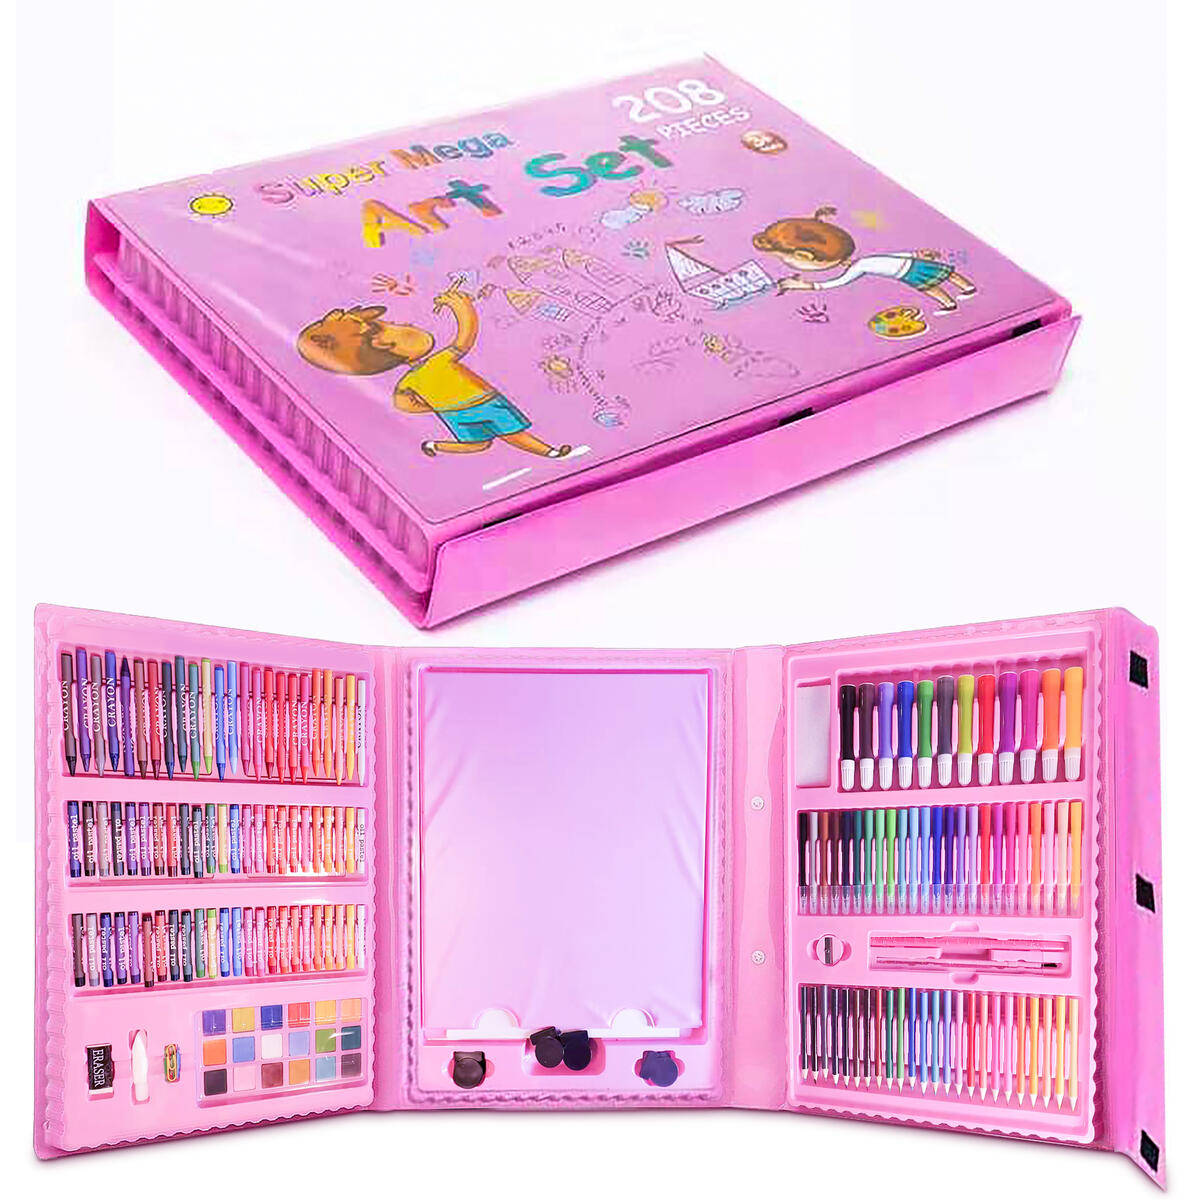 BuddynBuddies-208 Pcs Art Set, Art Kit Sketching and Drawing Handle Art Box with Oil Pastels, Crayons, Colored Pencils, Markers, Paint Brush, Watercolor Cakes, Sketchpad for Kids and Toddler